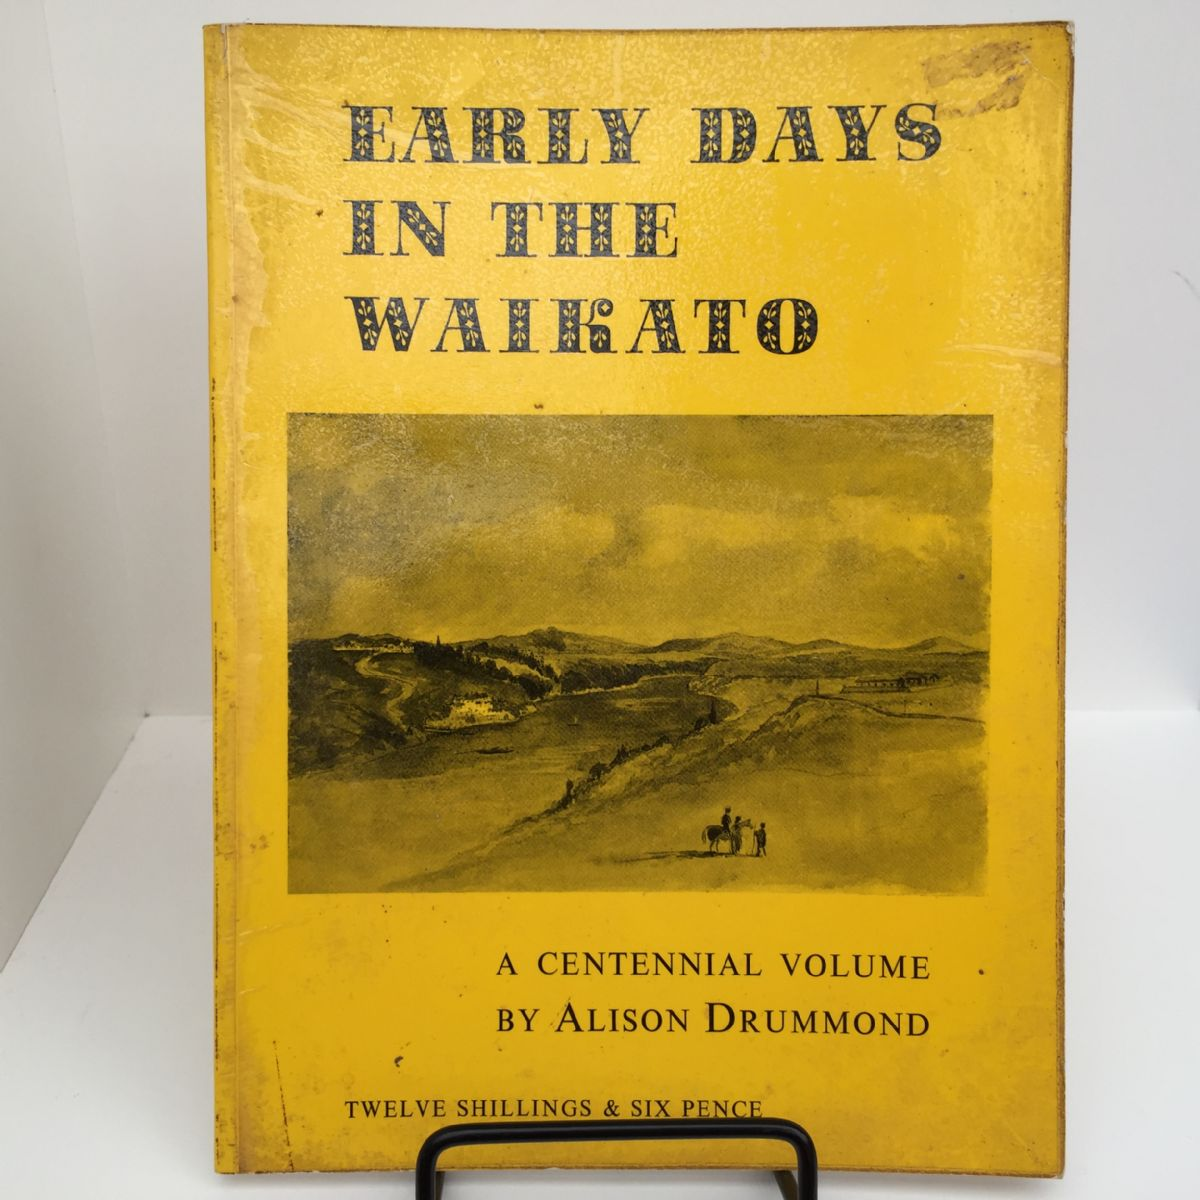 Early Days In the Waikato